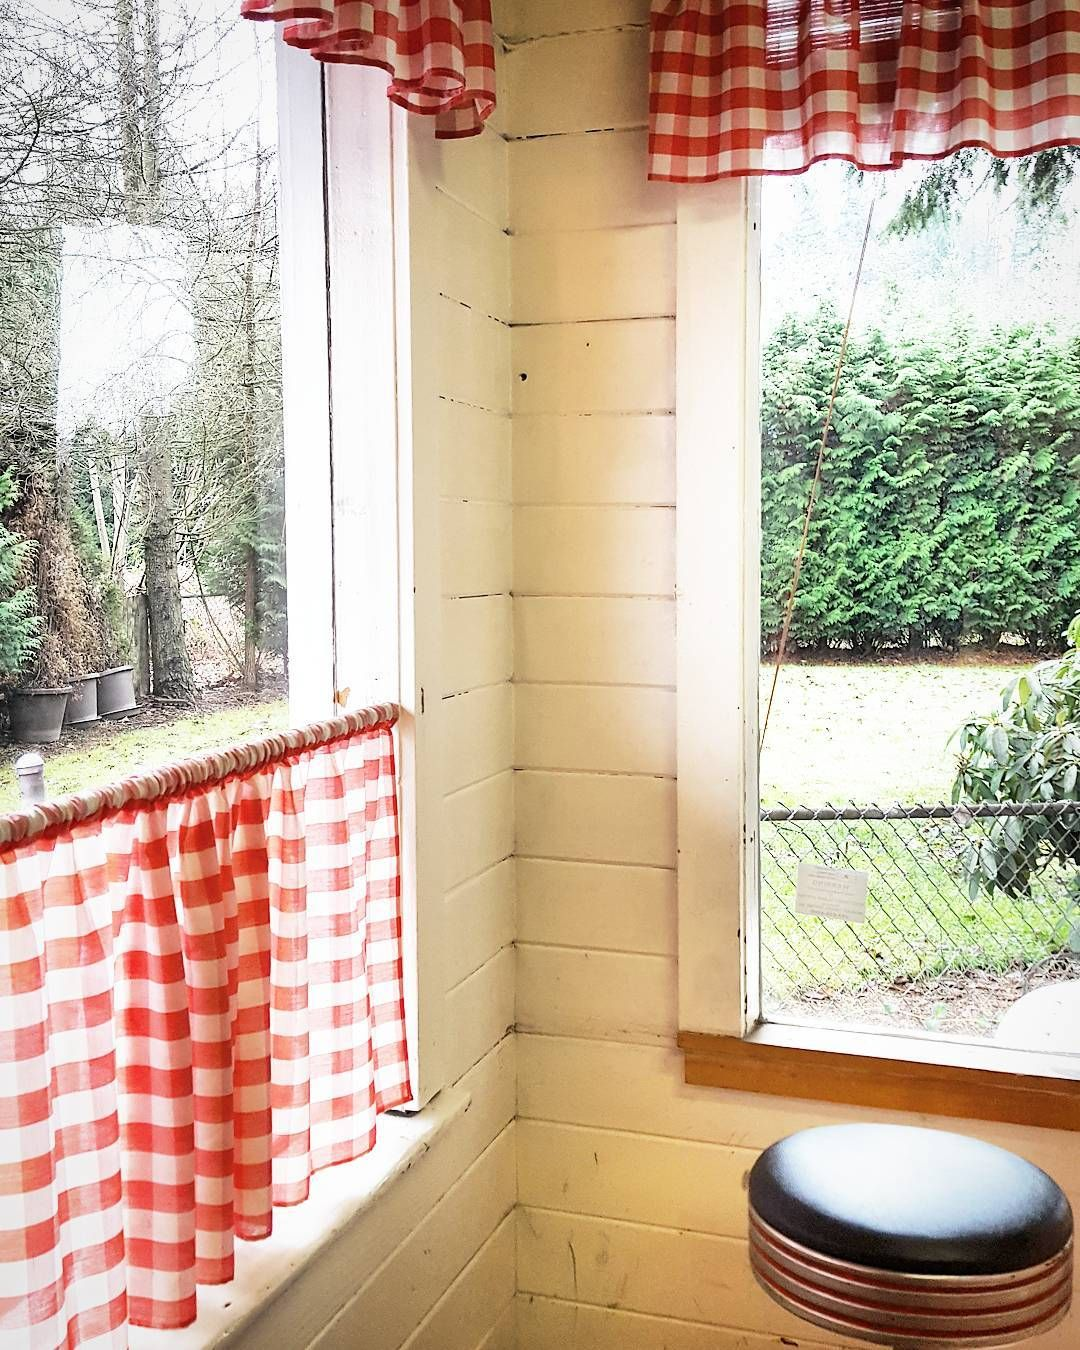 Red gingham curtains -  American Diner Authentic Red Gingham Curtains Cafe